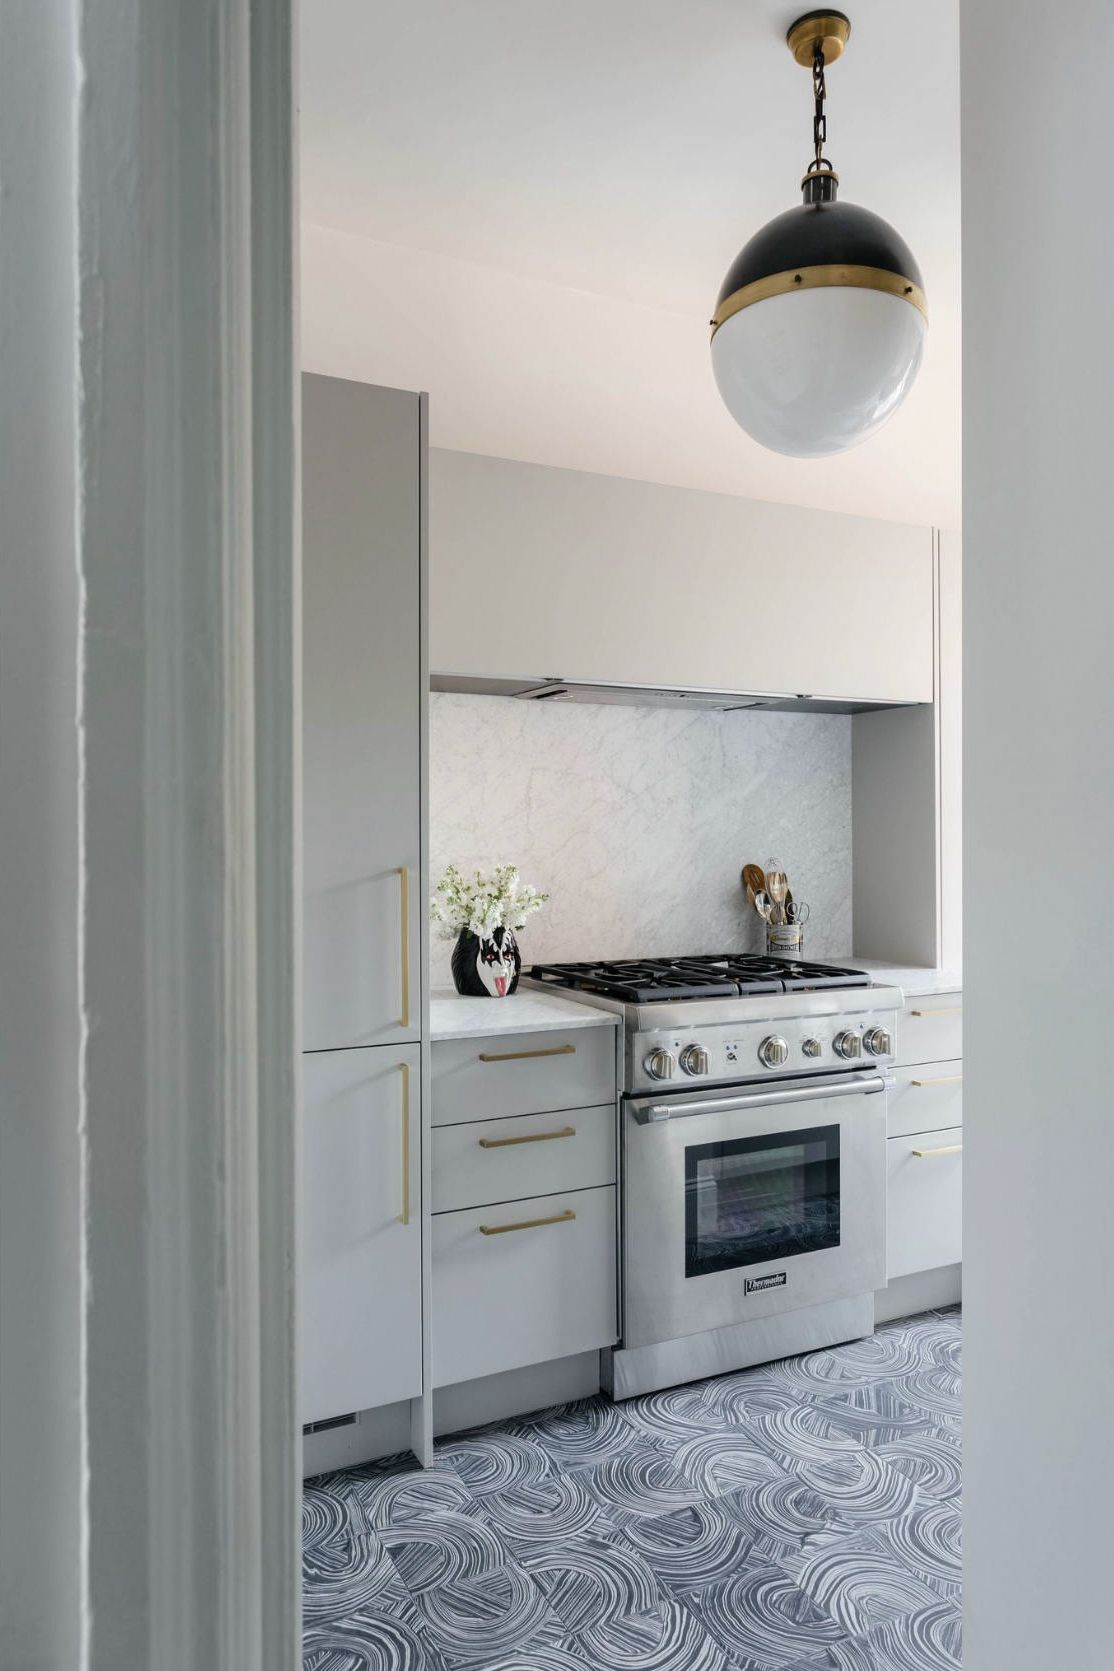 The swirly tiles are by Kelly Wearstler; the light is Thomas O'Brien's Hicks Pendant.  #Kitchen #KitchenRemodel #GutRemodel #Remodeling #Tiles #TileDesign #UrbanHomes #CustomKitchen #RenovatedKitchen #Renovating #RemodelKitchen #Stovetop #ModernKitchen #ModernDesign #ApartmentDesign #Lights #KitchenLights #AccentPiece #AccentLighting #Apartment #ApartmentDecor #Patterned #Floors